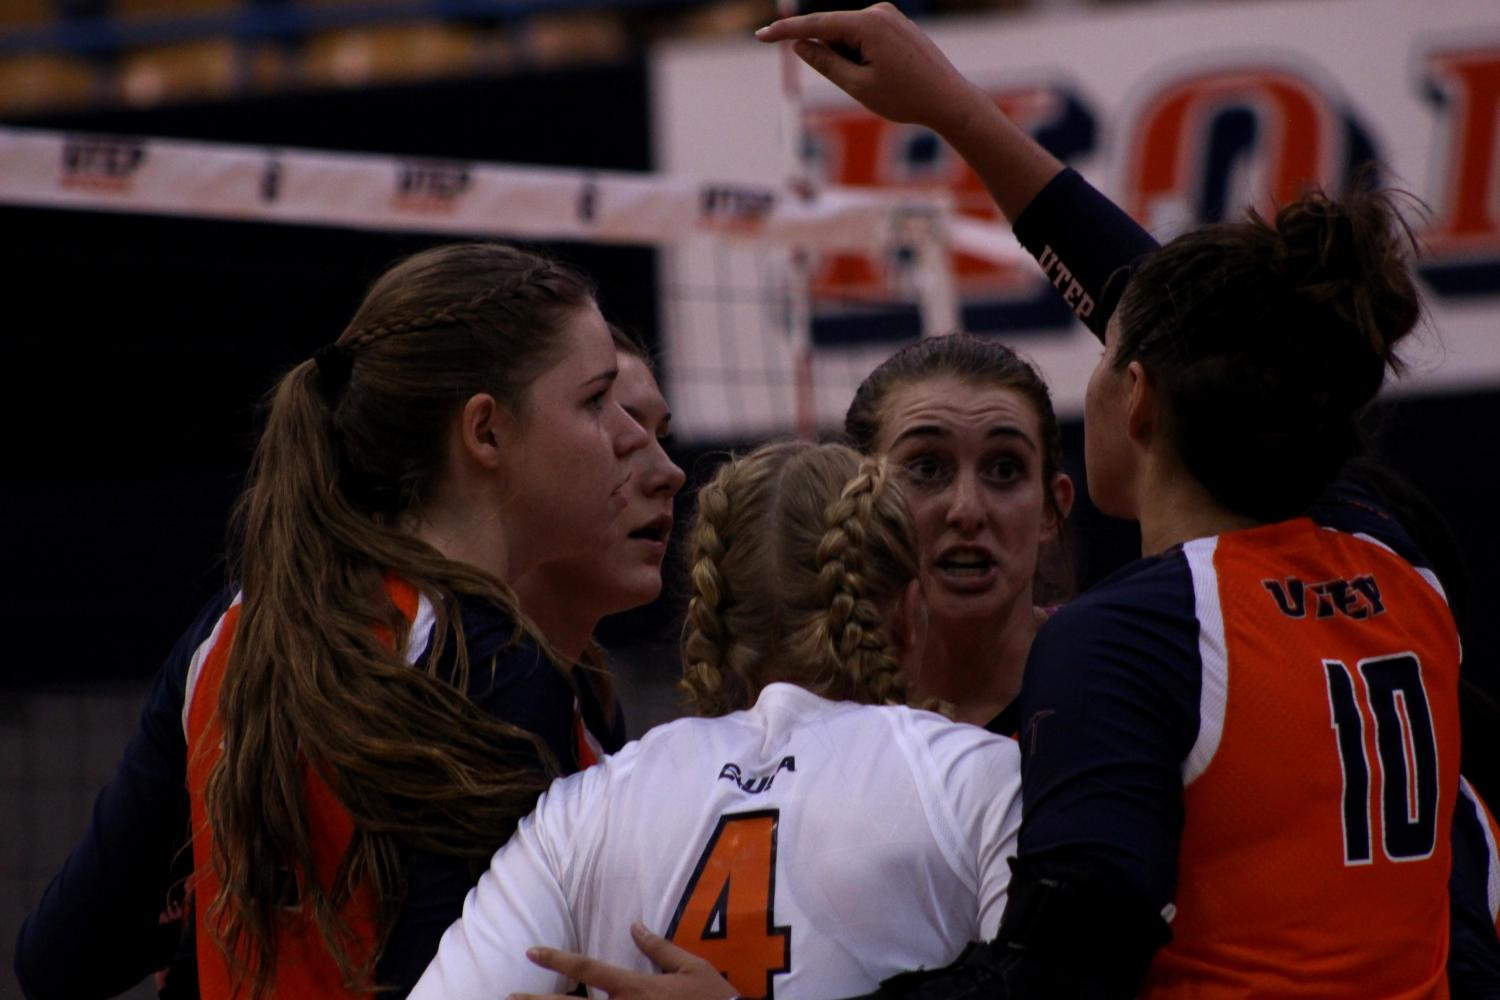 The+UTEP+Volleyball+team+is+still+searching+for+their+first+win+of+2017.